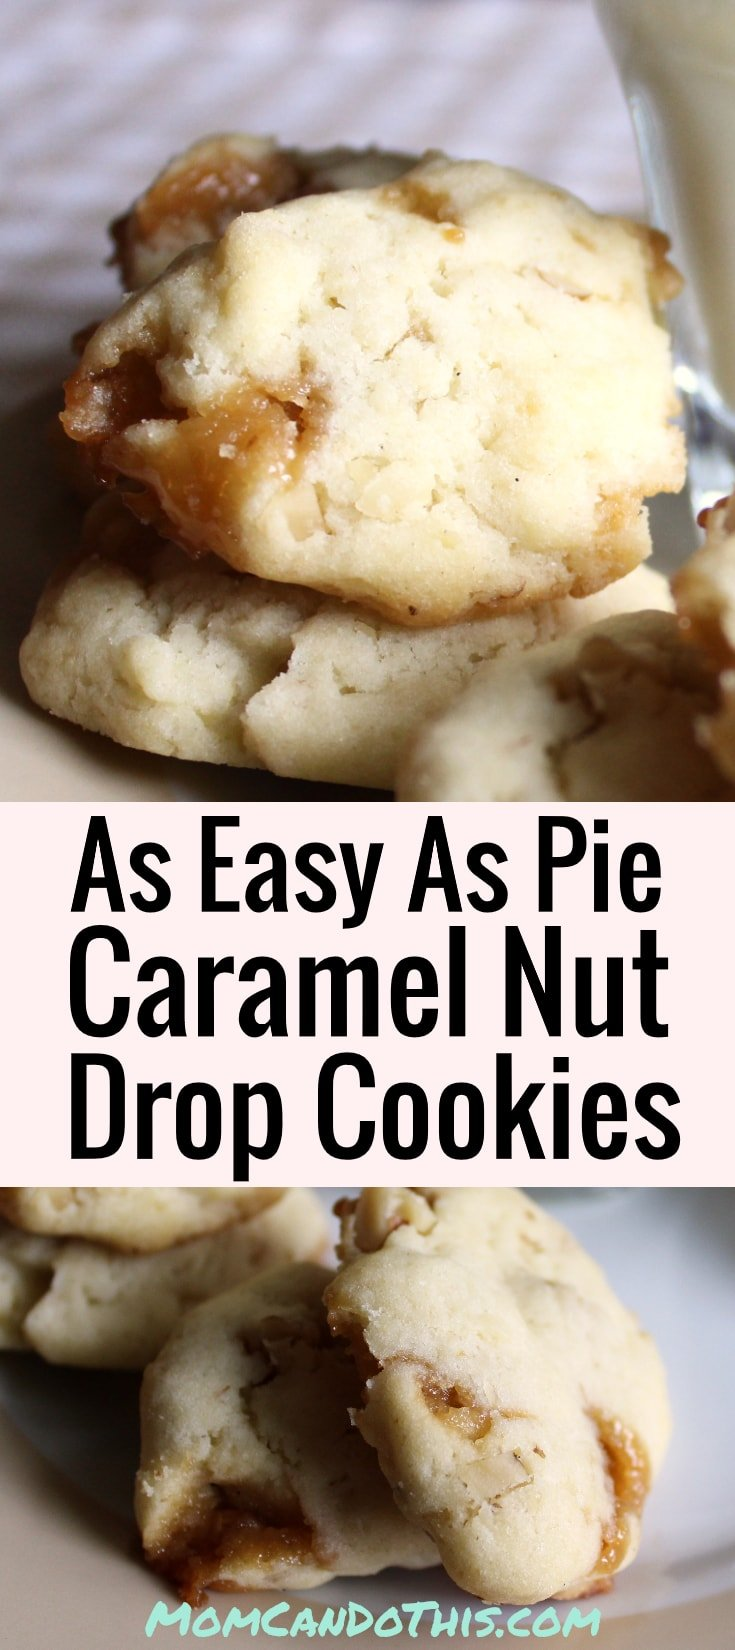 Super Easiy Caramel Cookies Recipe. One of our favorite easy cookie recipes! Make chewy caramel cookies in no time. Foolproof homemade cookies! Click to print recipe.